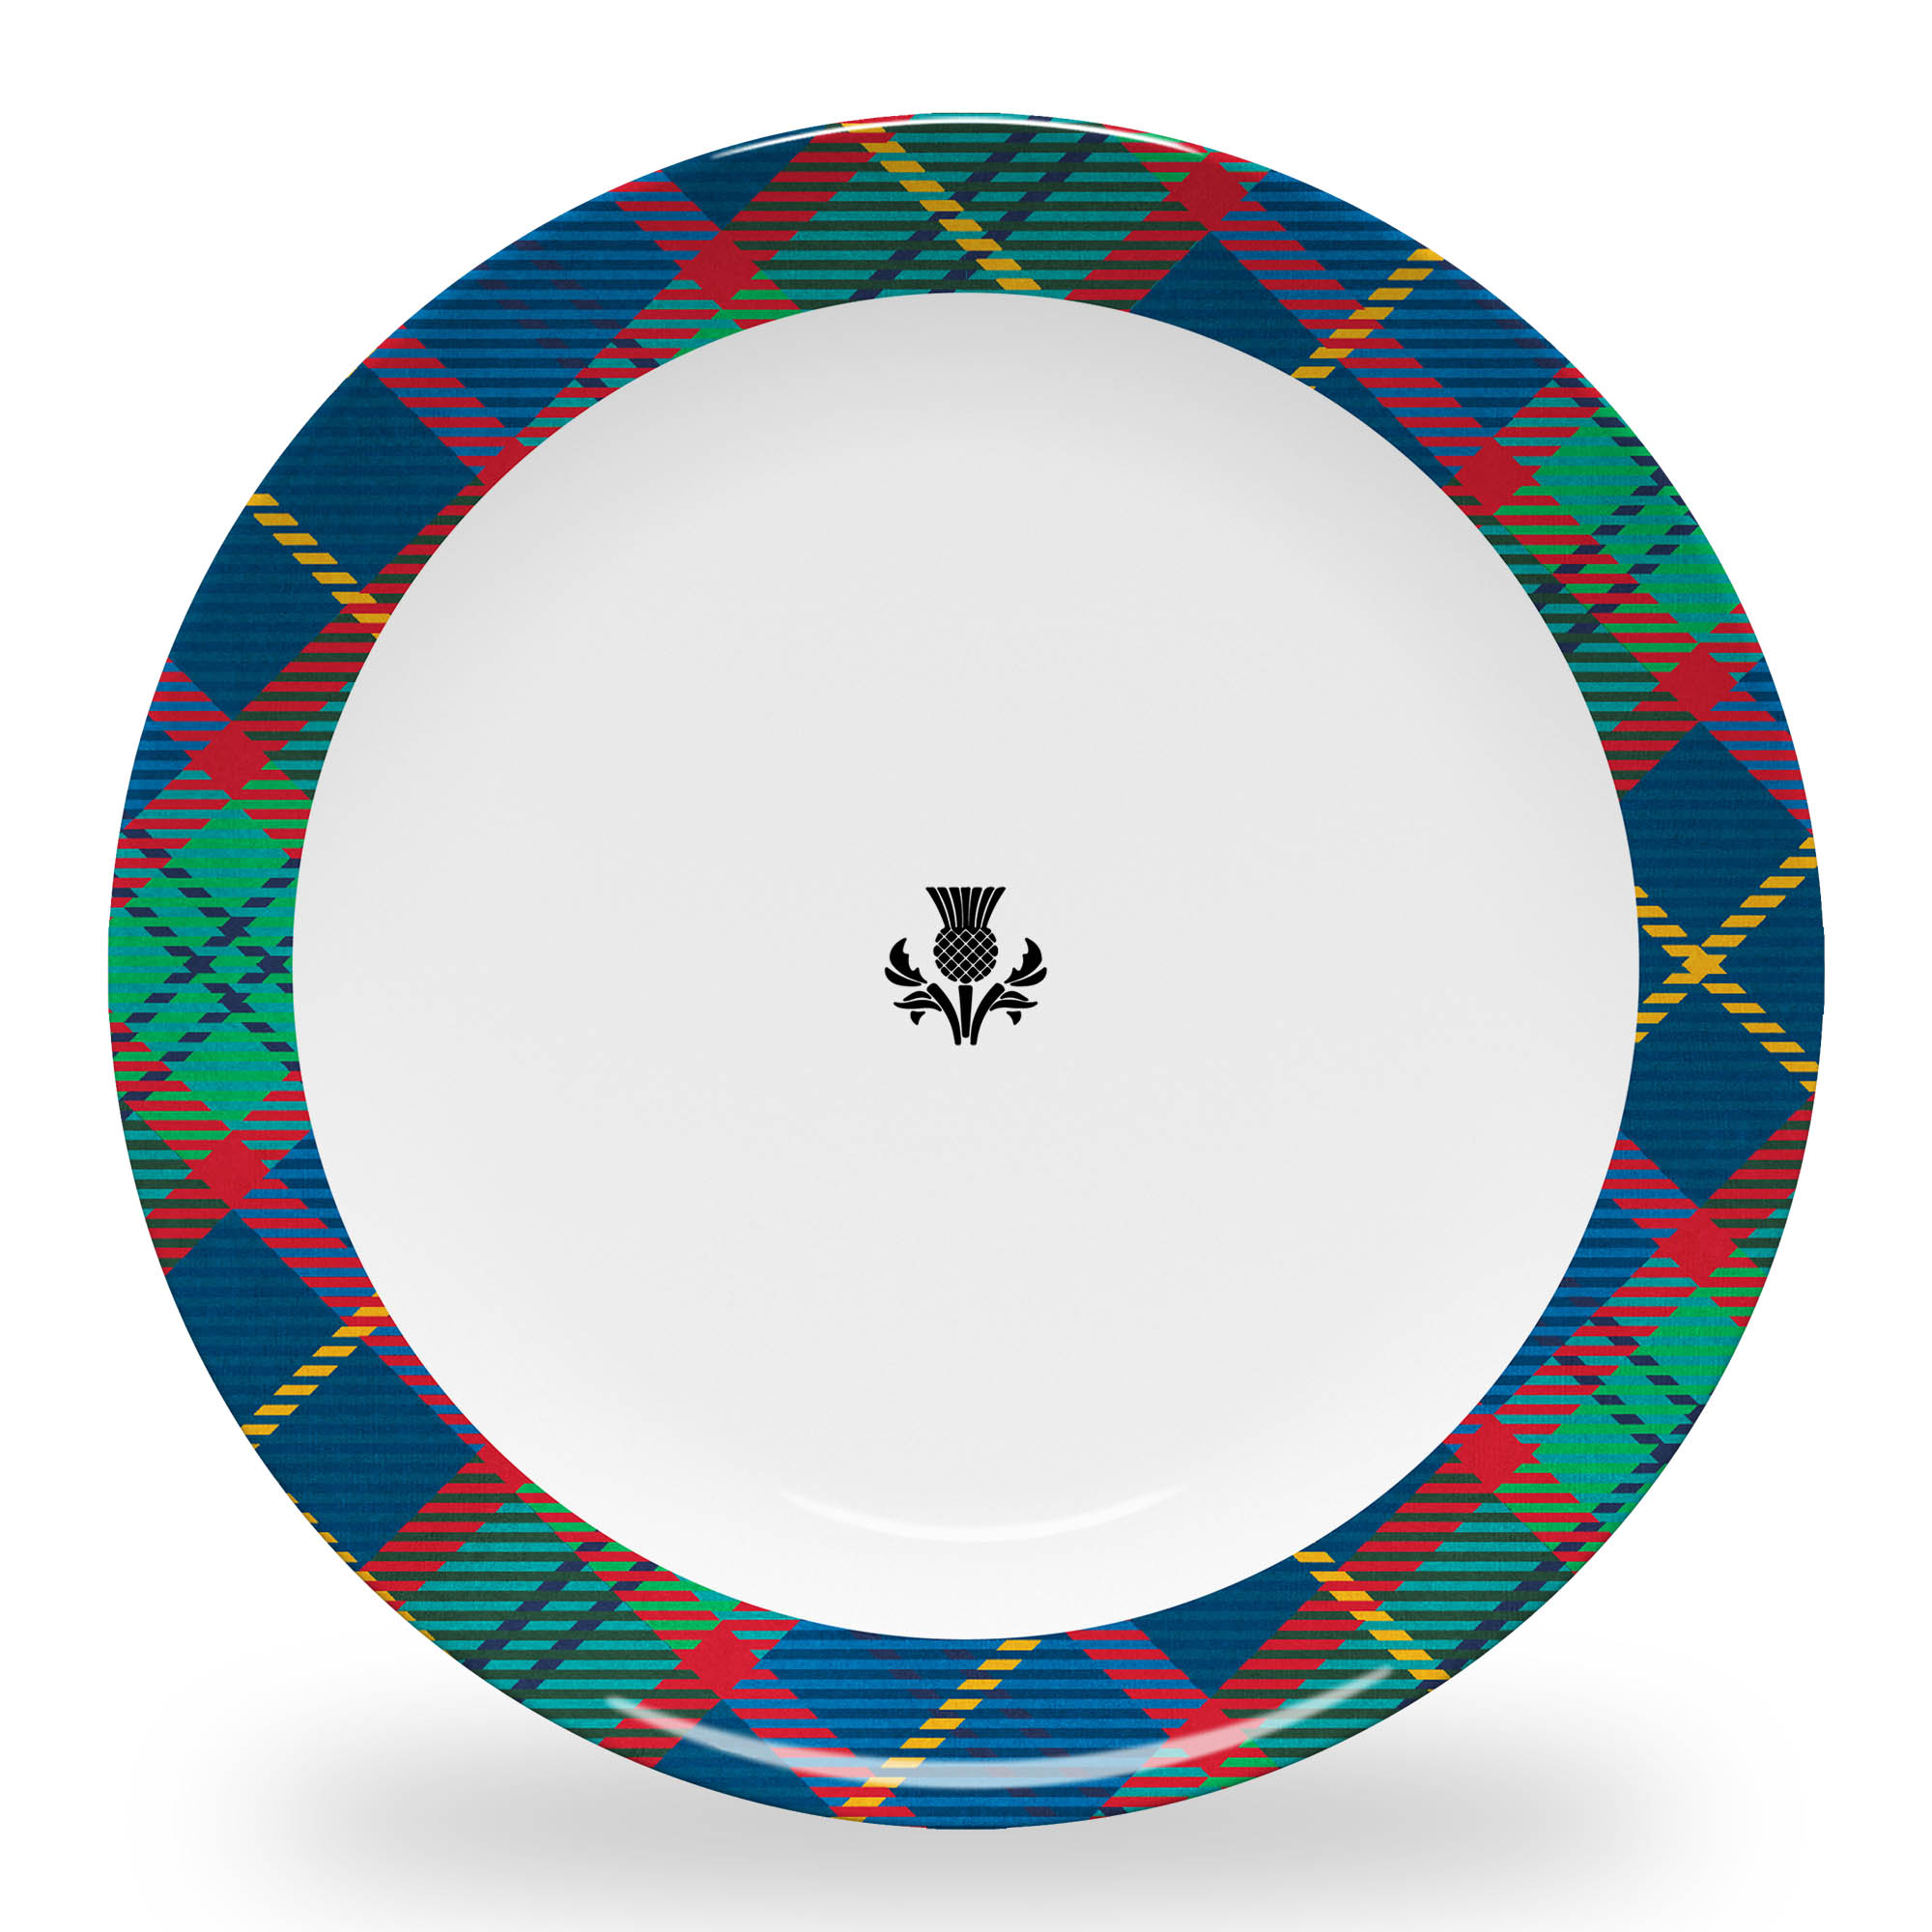 Tartan Plate with Thistle